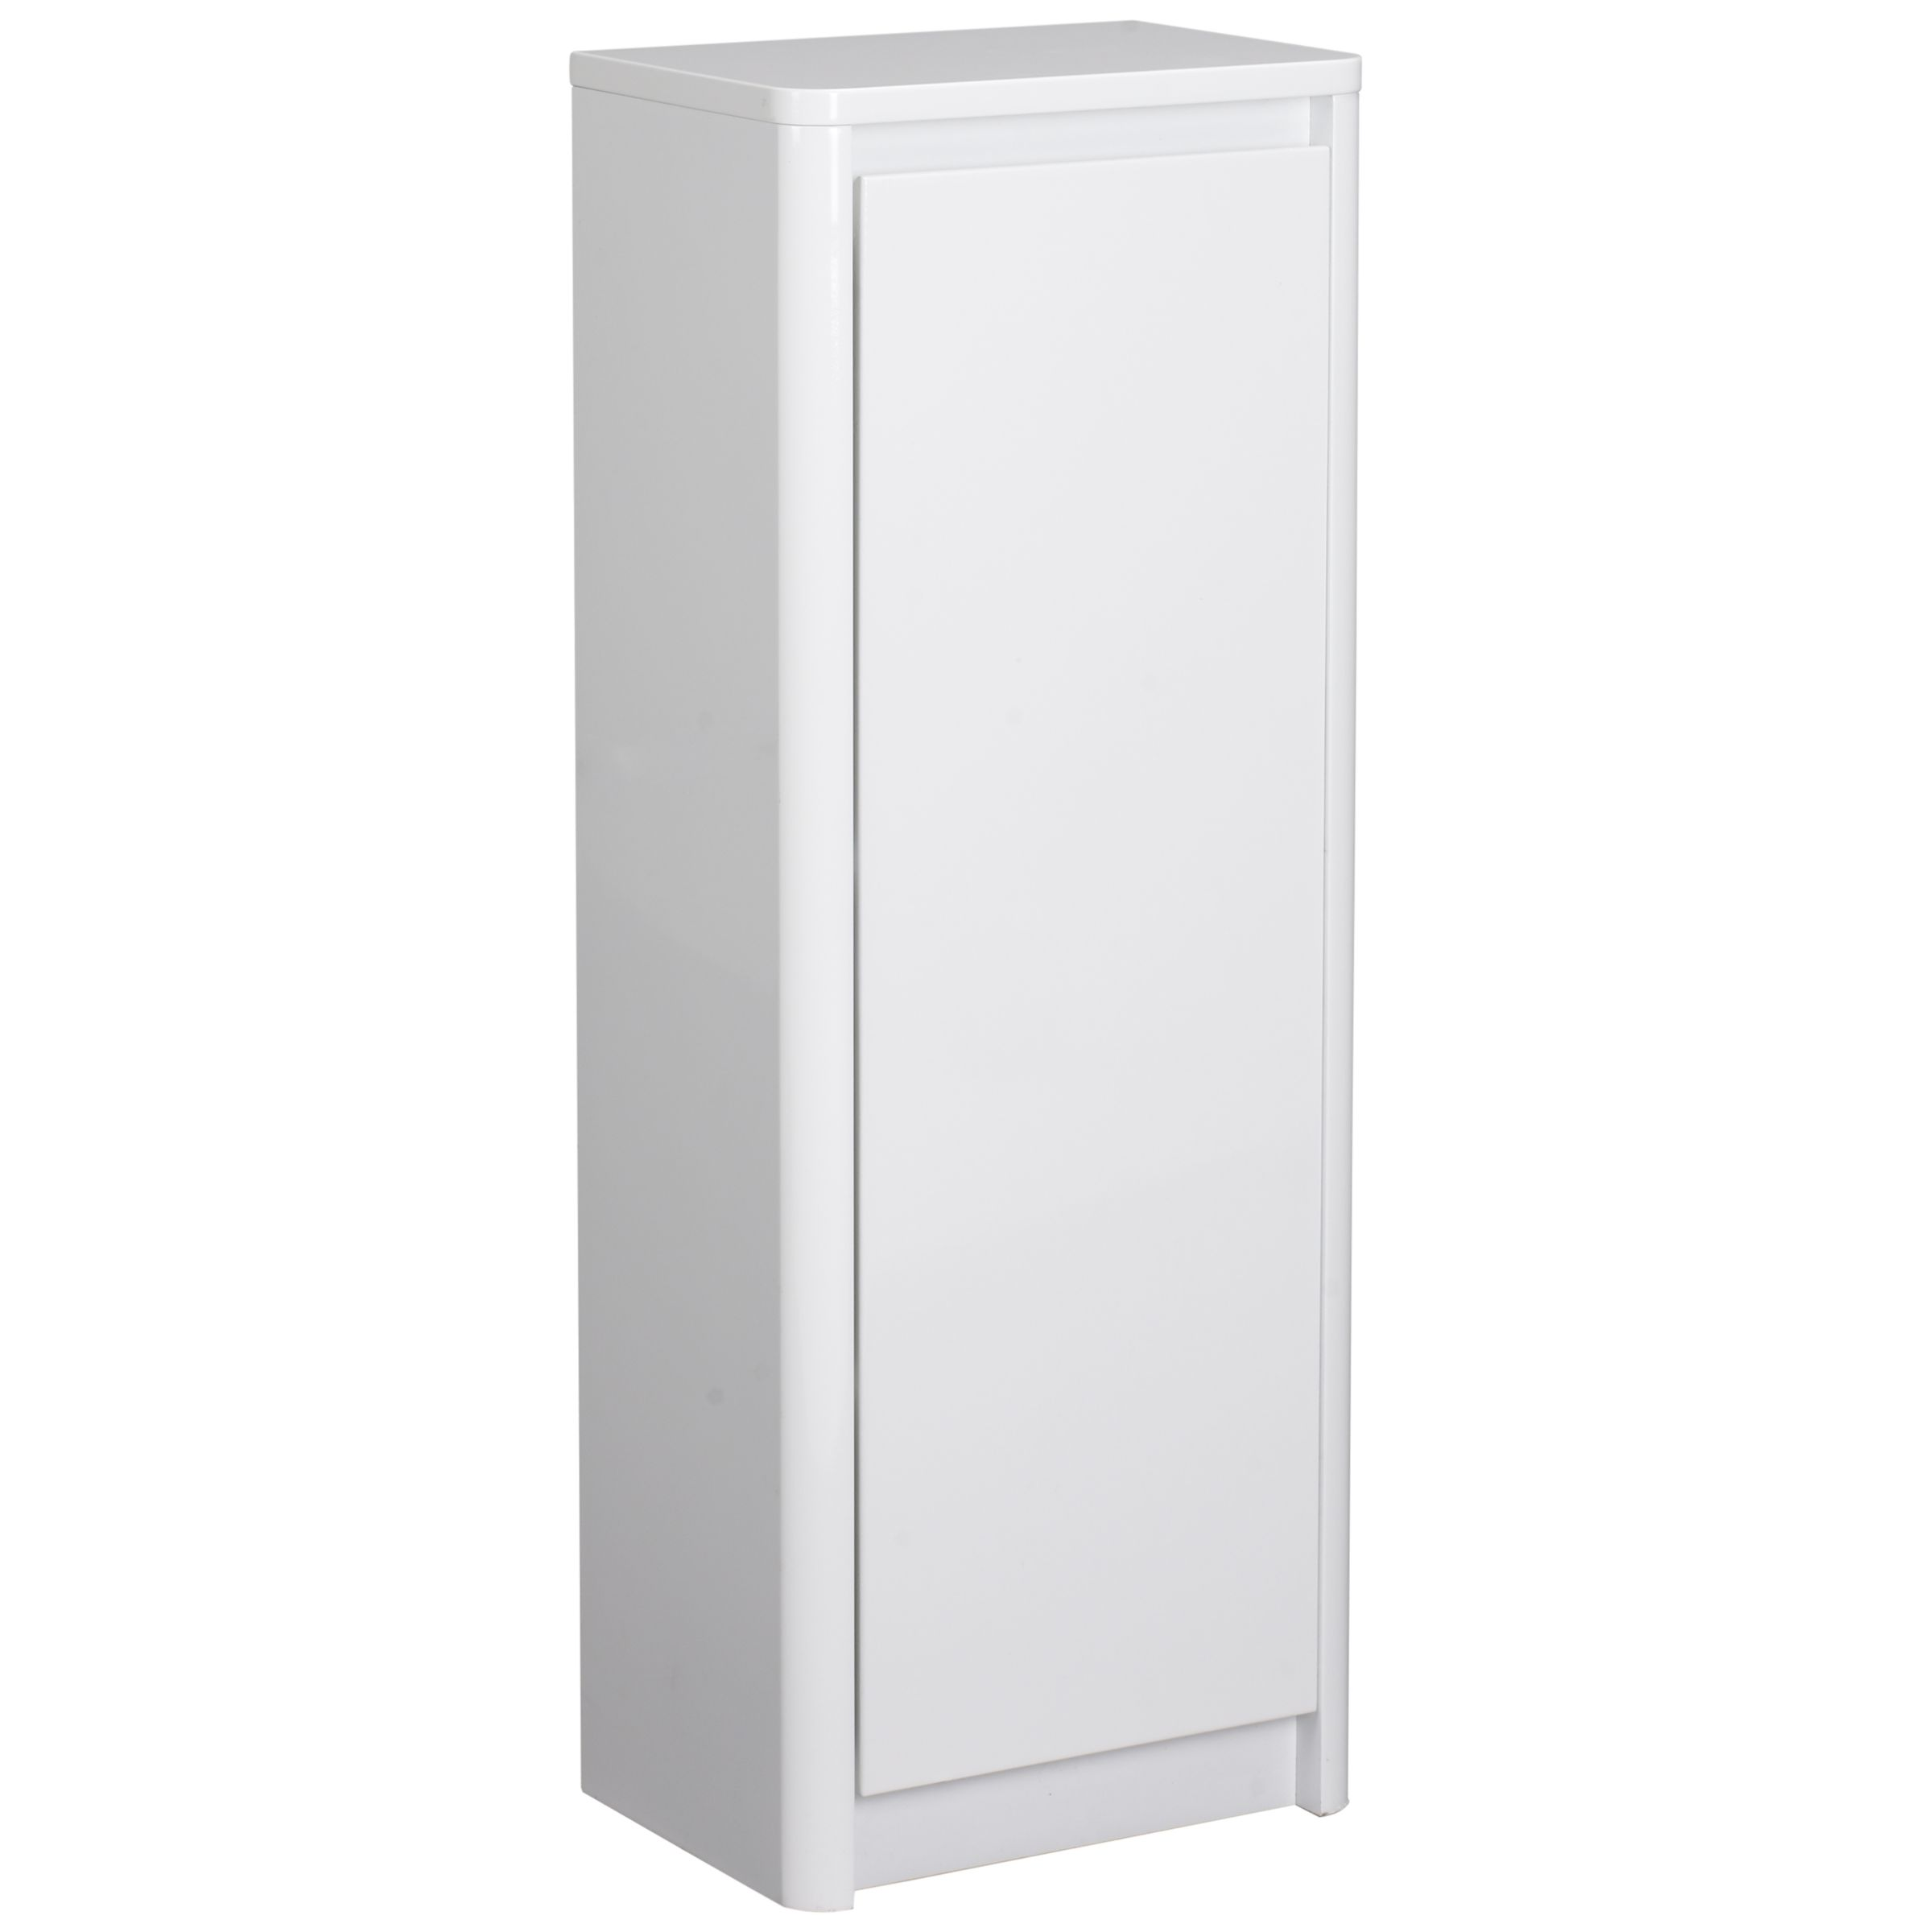 bathroom cabinets free standing white gloss buy cheap floor standing bathroom cabinet compare 24840